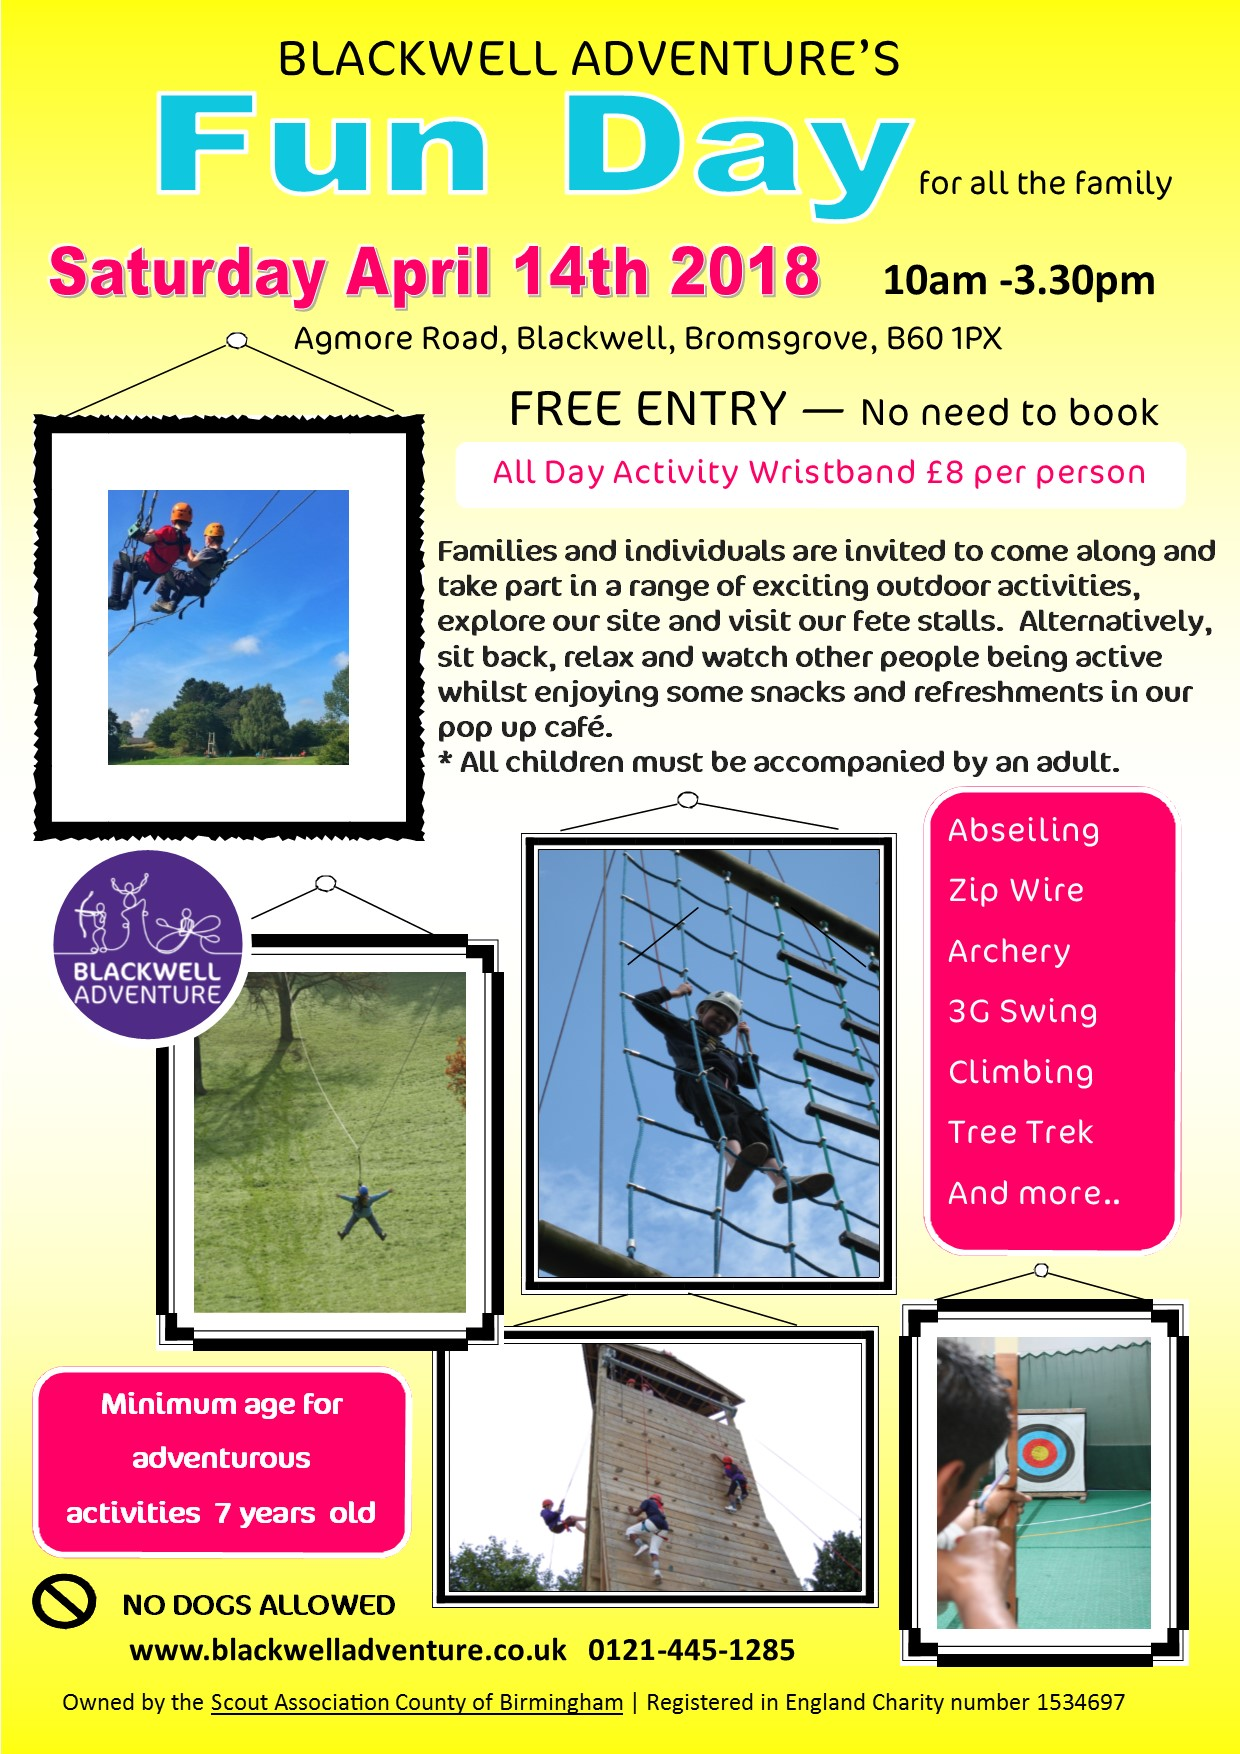 Family Fun Day Saturday 14th April 2018